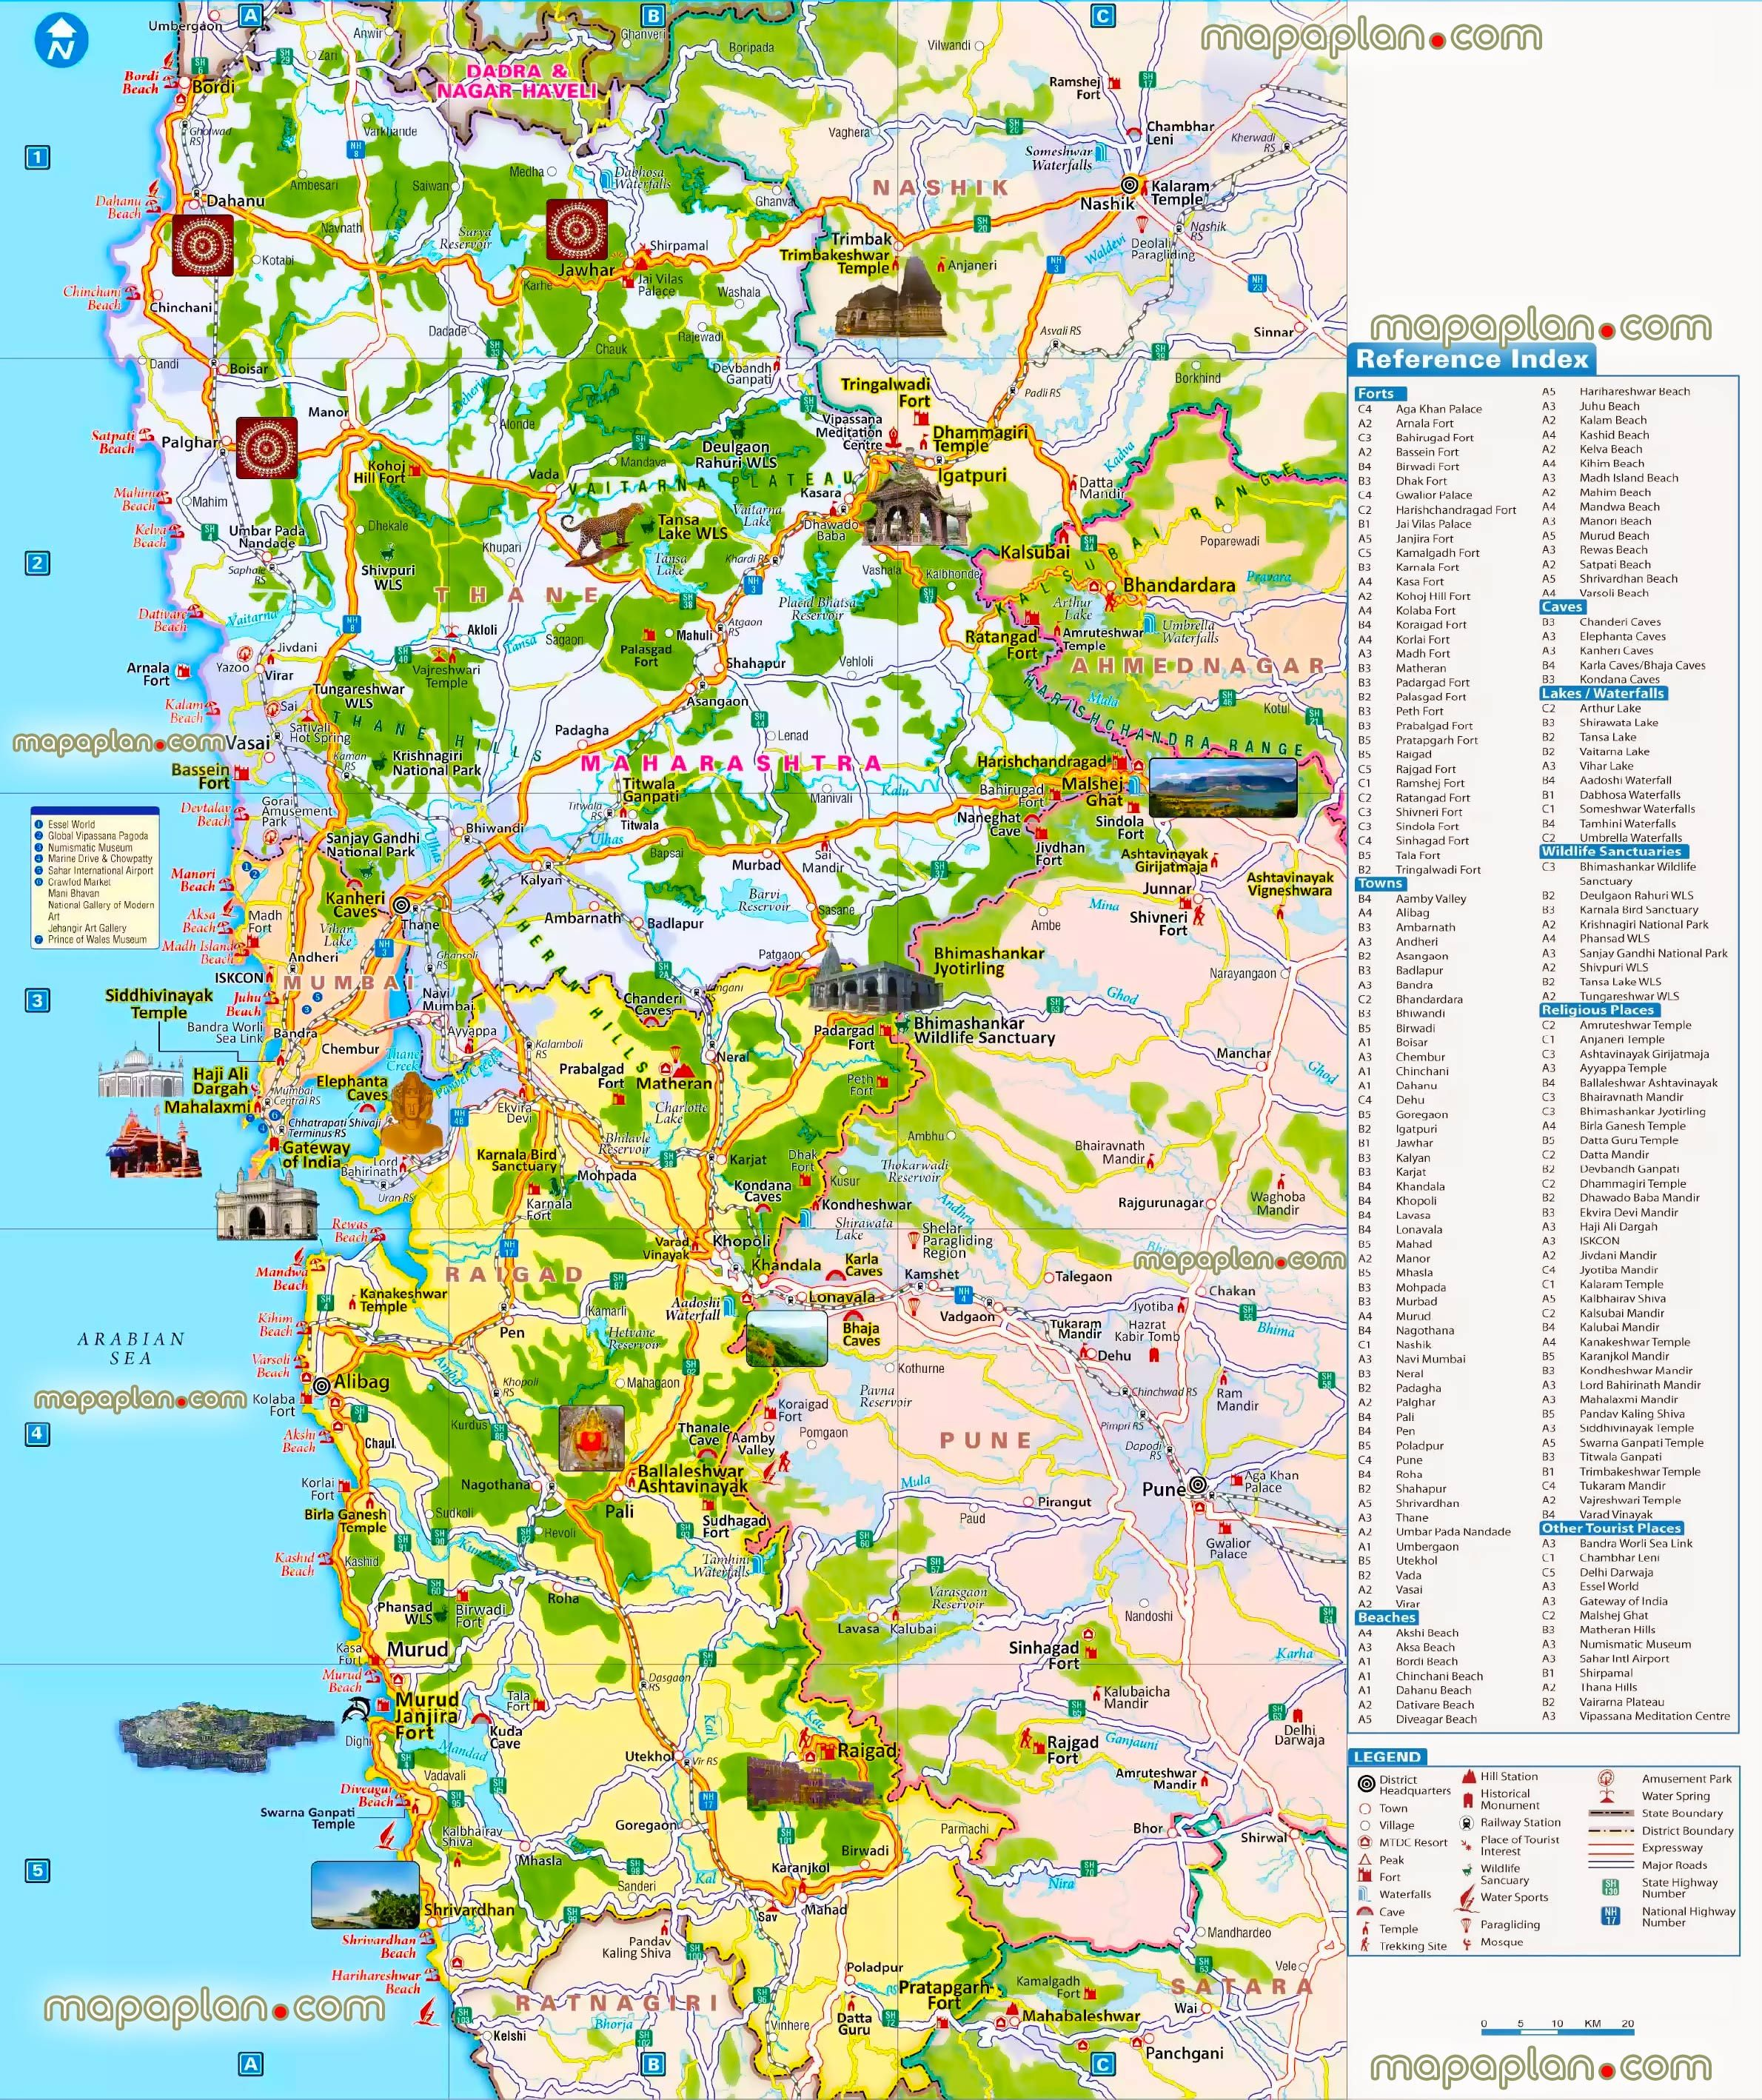 bombay metropolitan region surrounding suburbs cities towns villages places visitors top attractions india offline download virtual interactive hd plan overview region trip highlights high quality large scale vector aerial satellite poster roads view zoning main district areas municipal regionss Mumbai top tourist attractions map